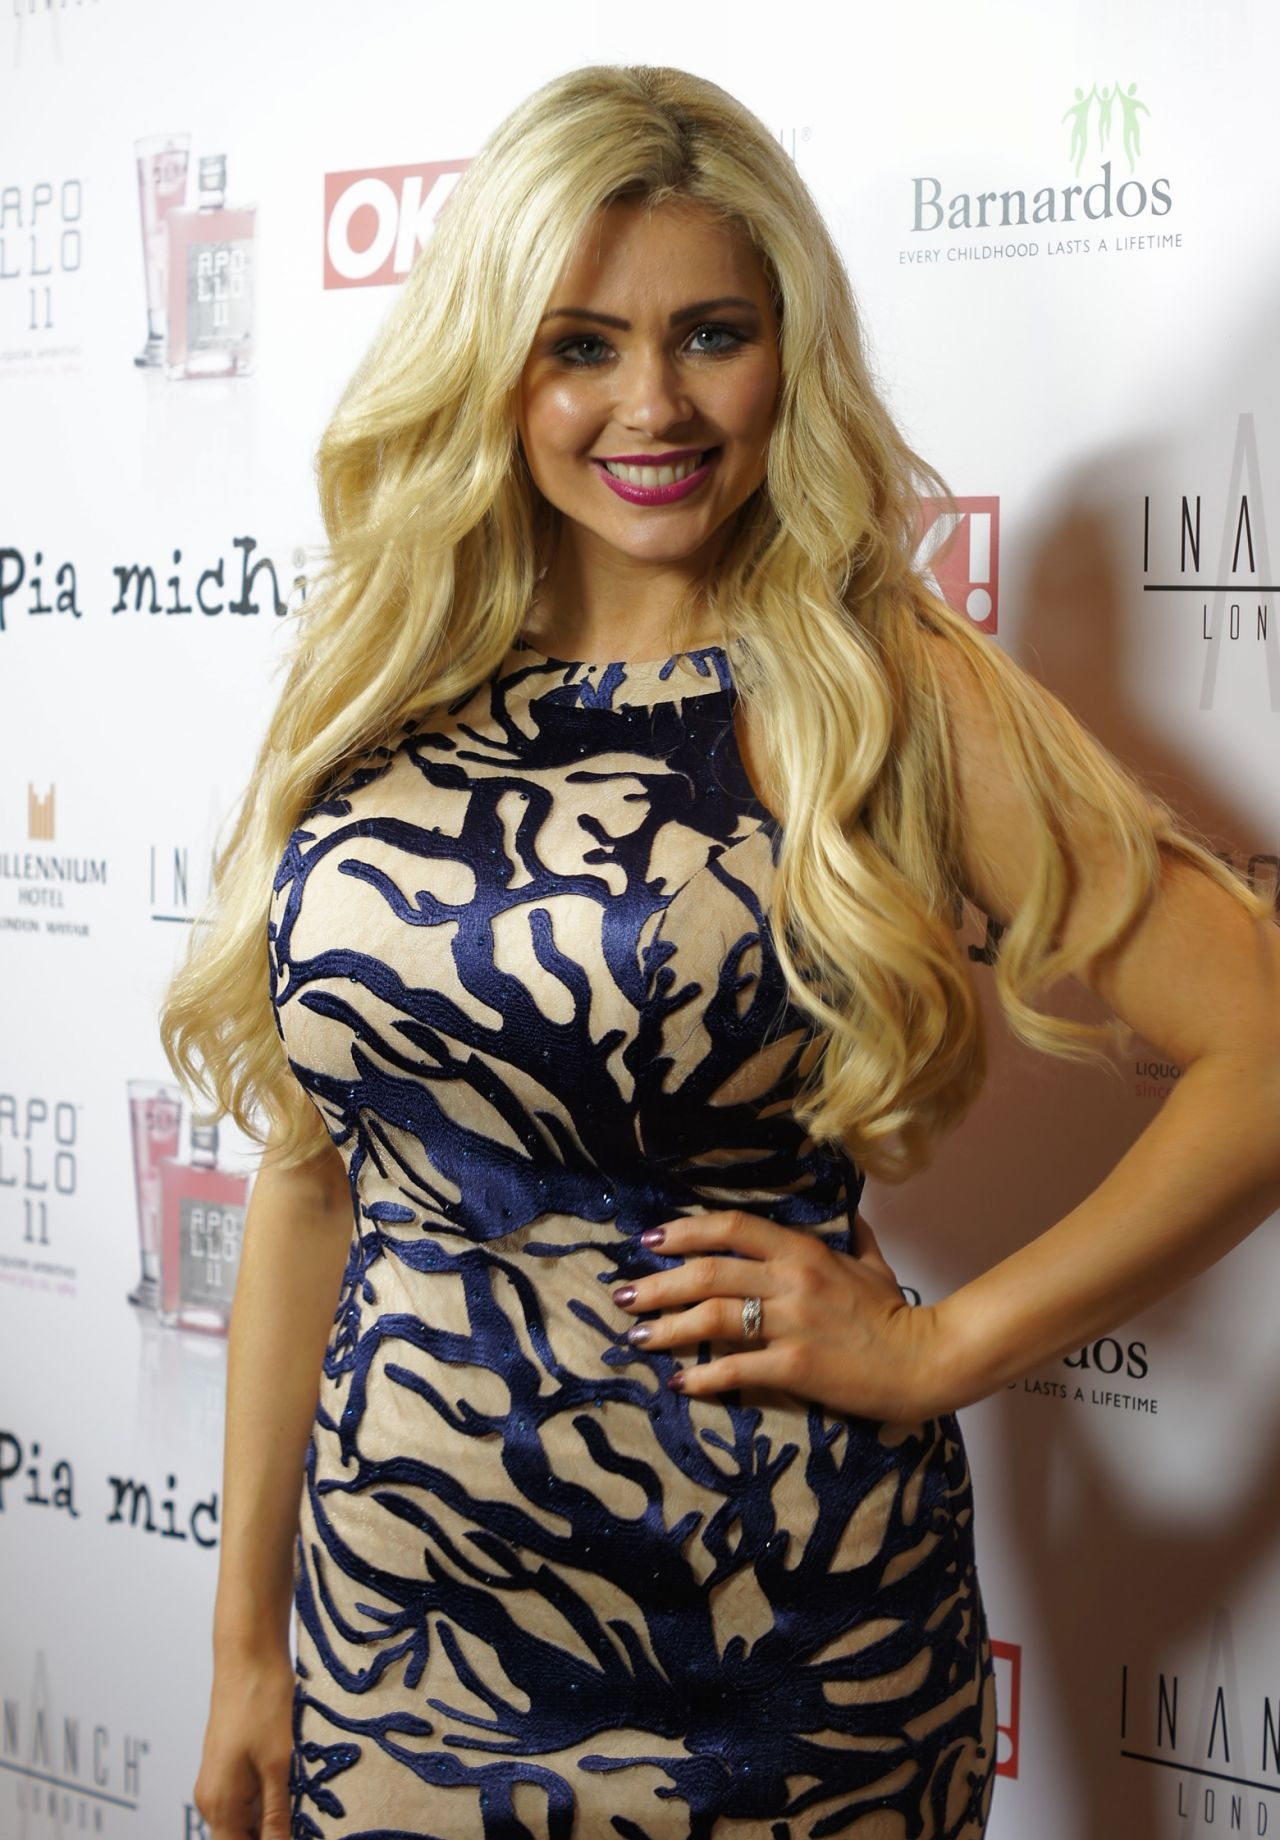 Nicola McLean - Pia Michi Catwalk Show in London - March 2014